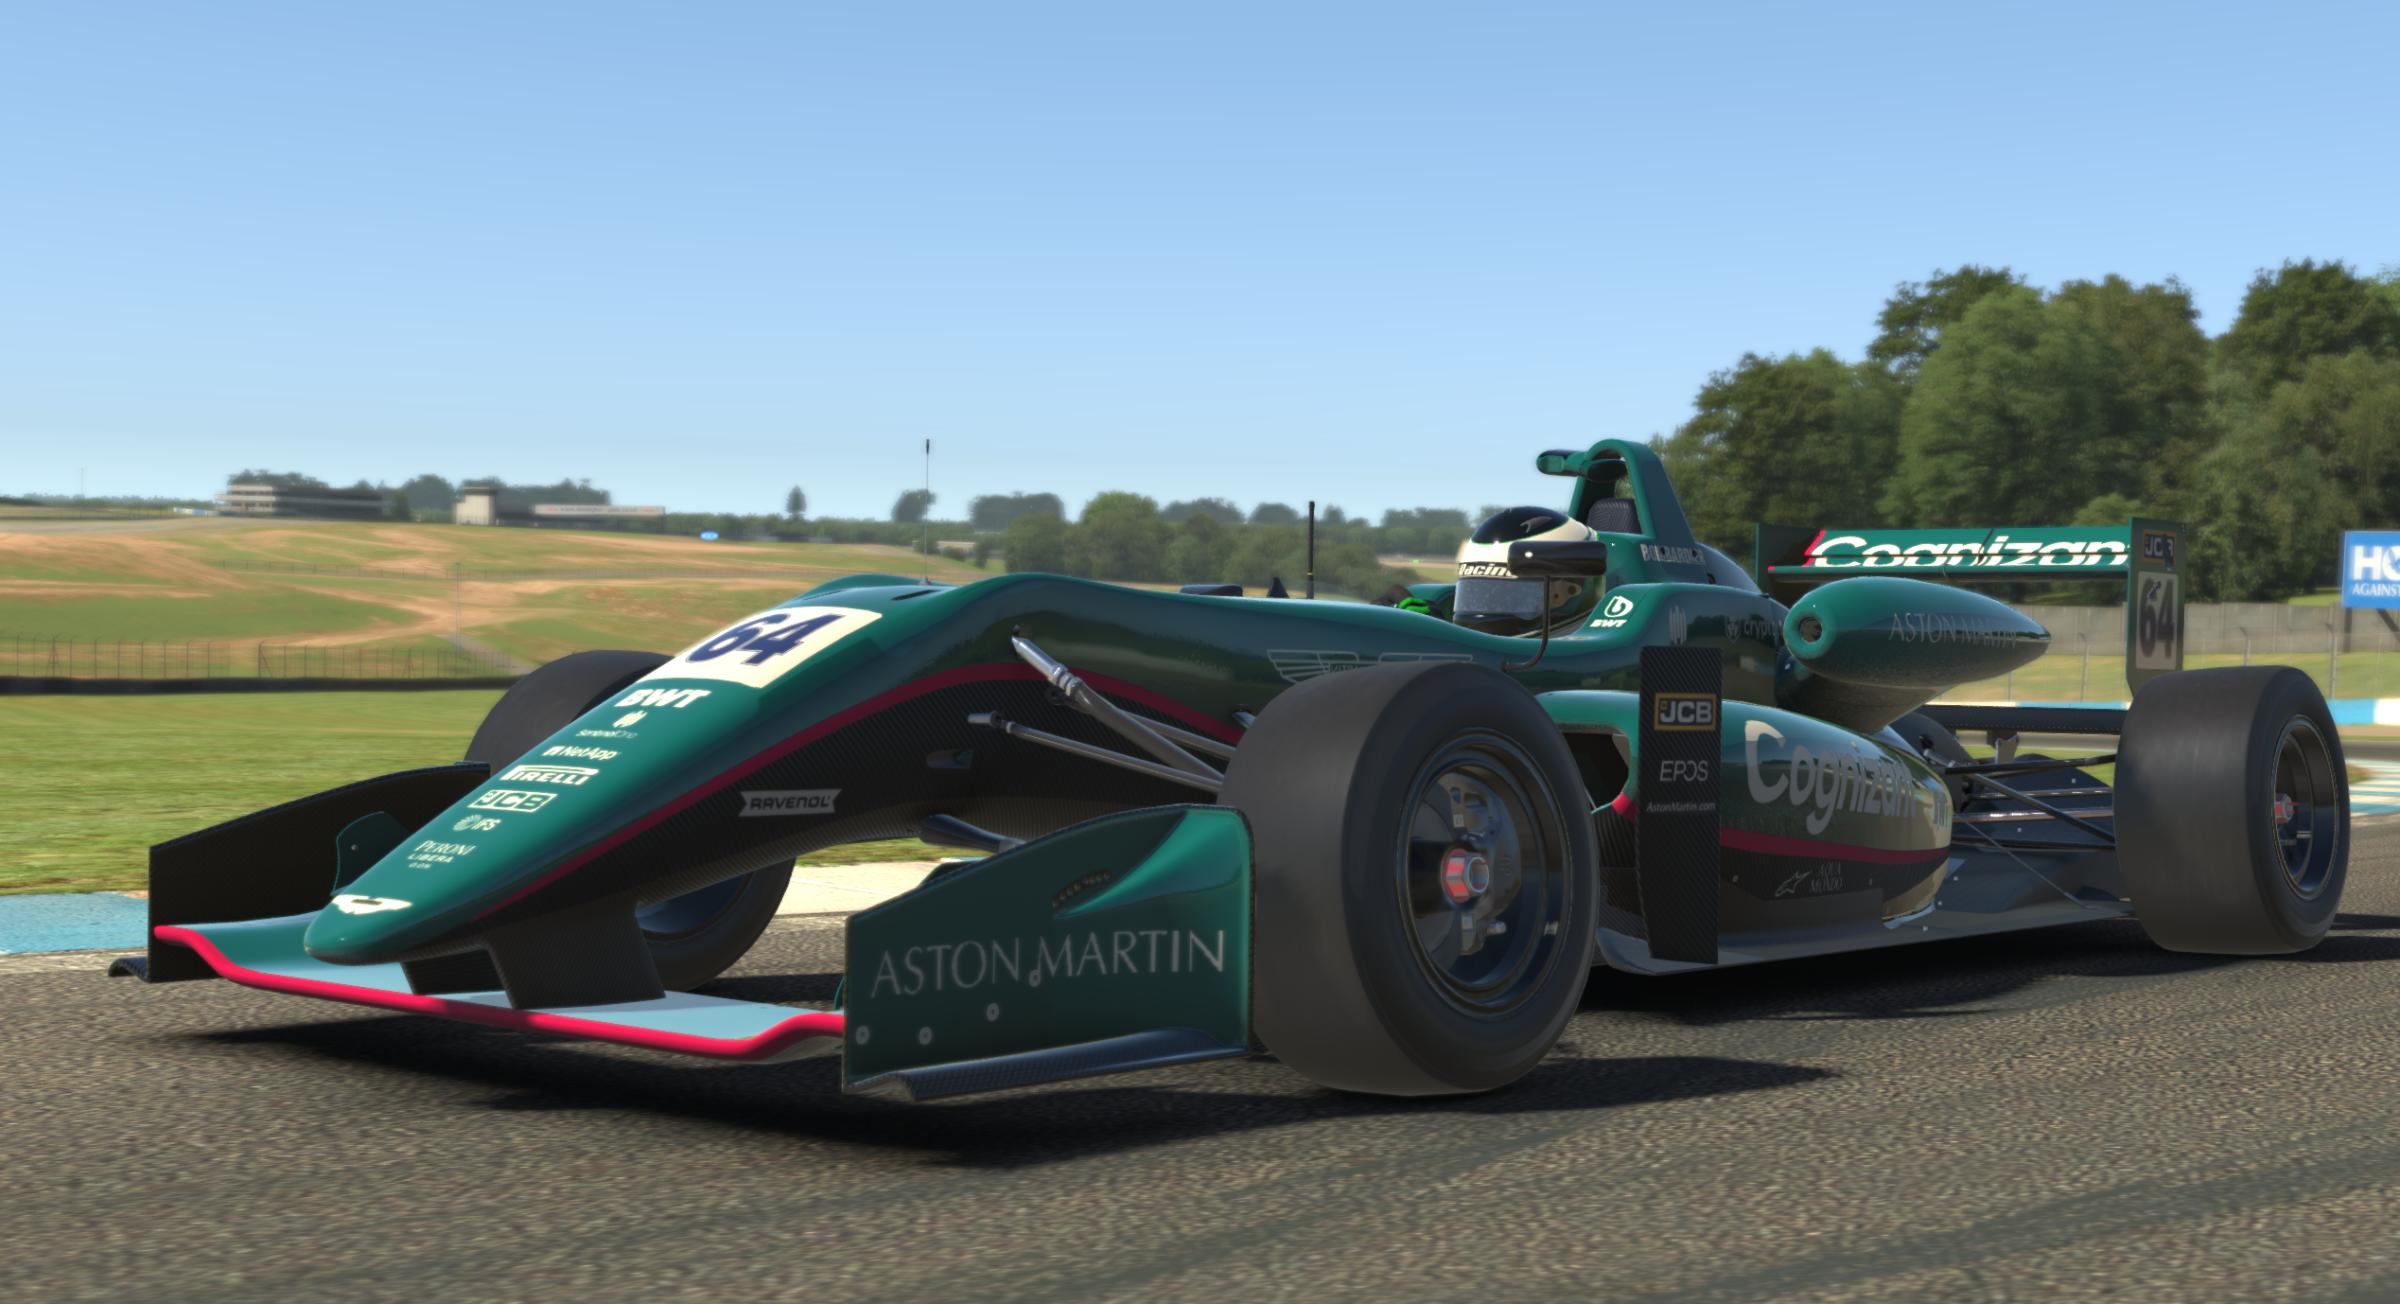 Preview of Aston Martin Cognizant F1 2021 by Thomas S.